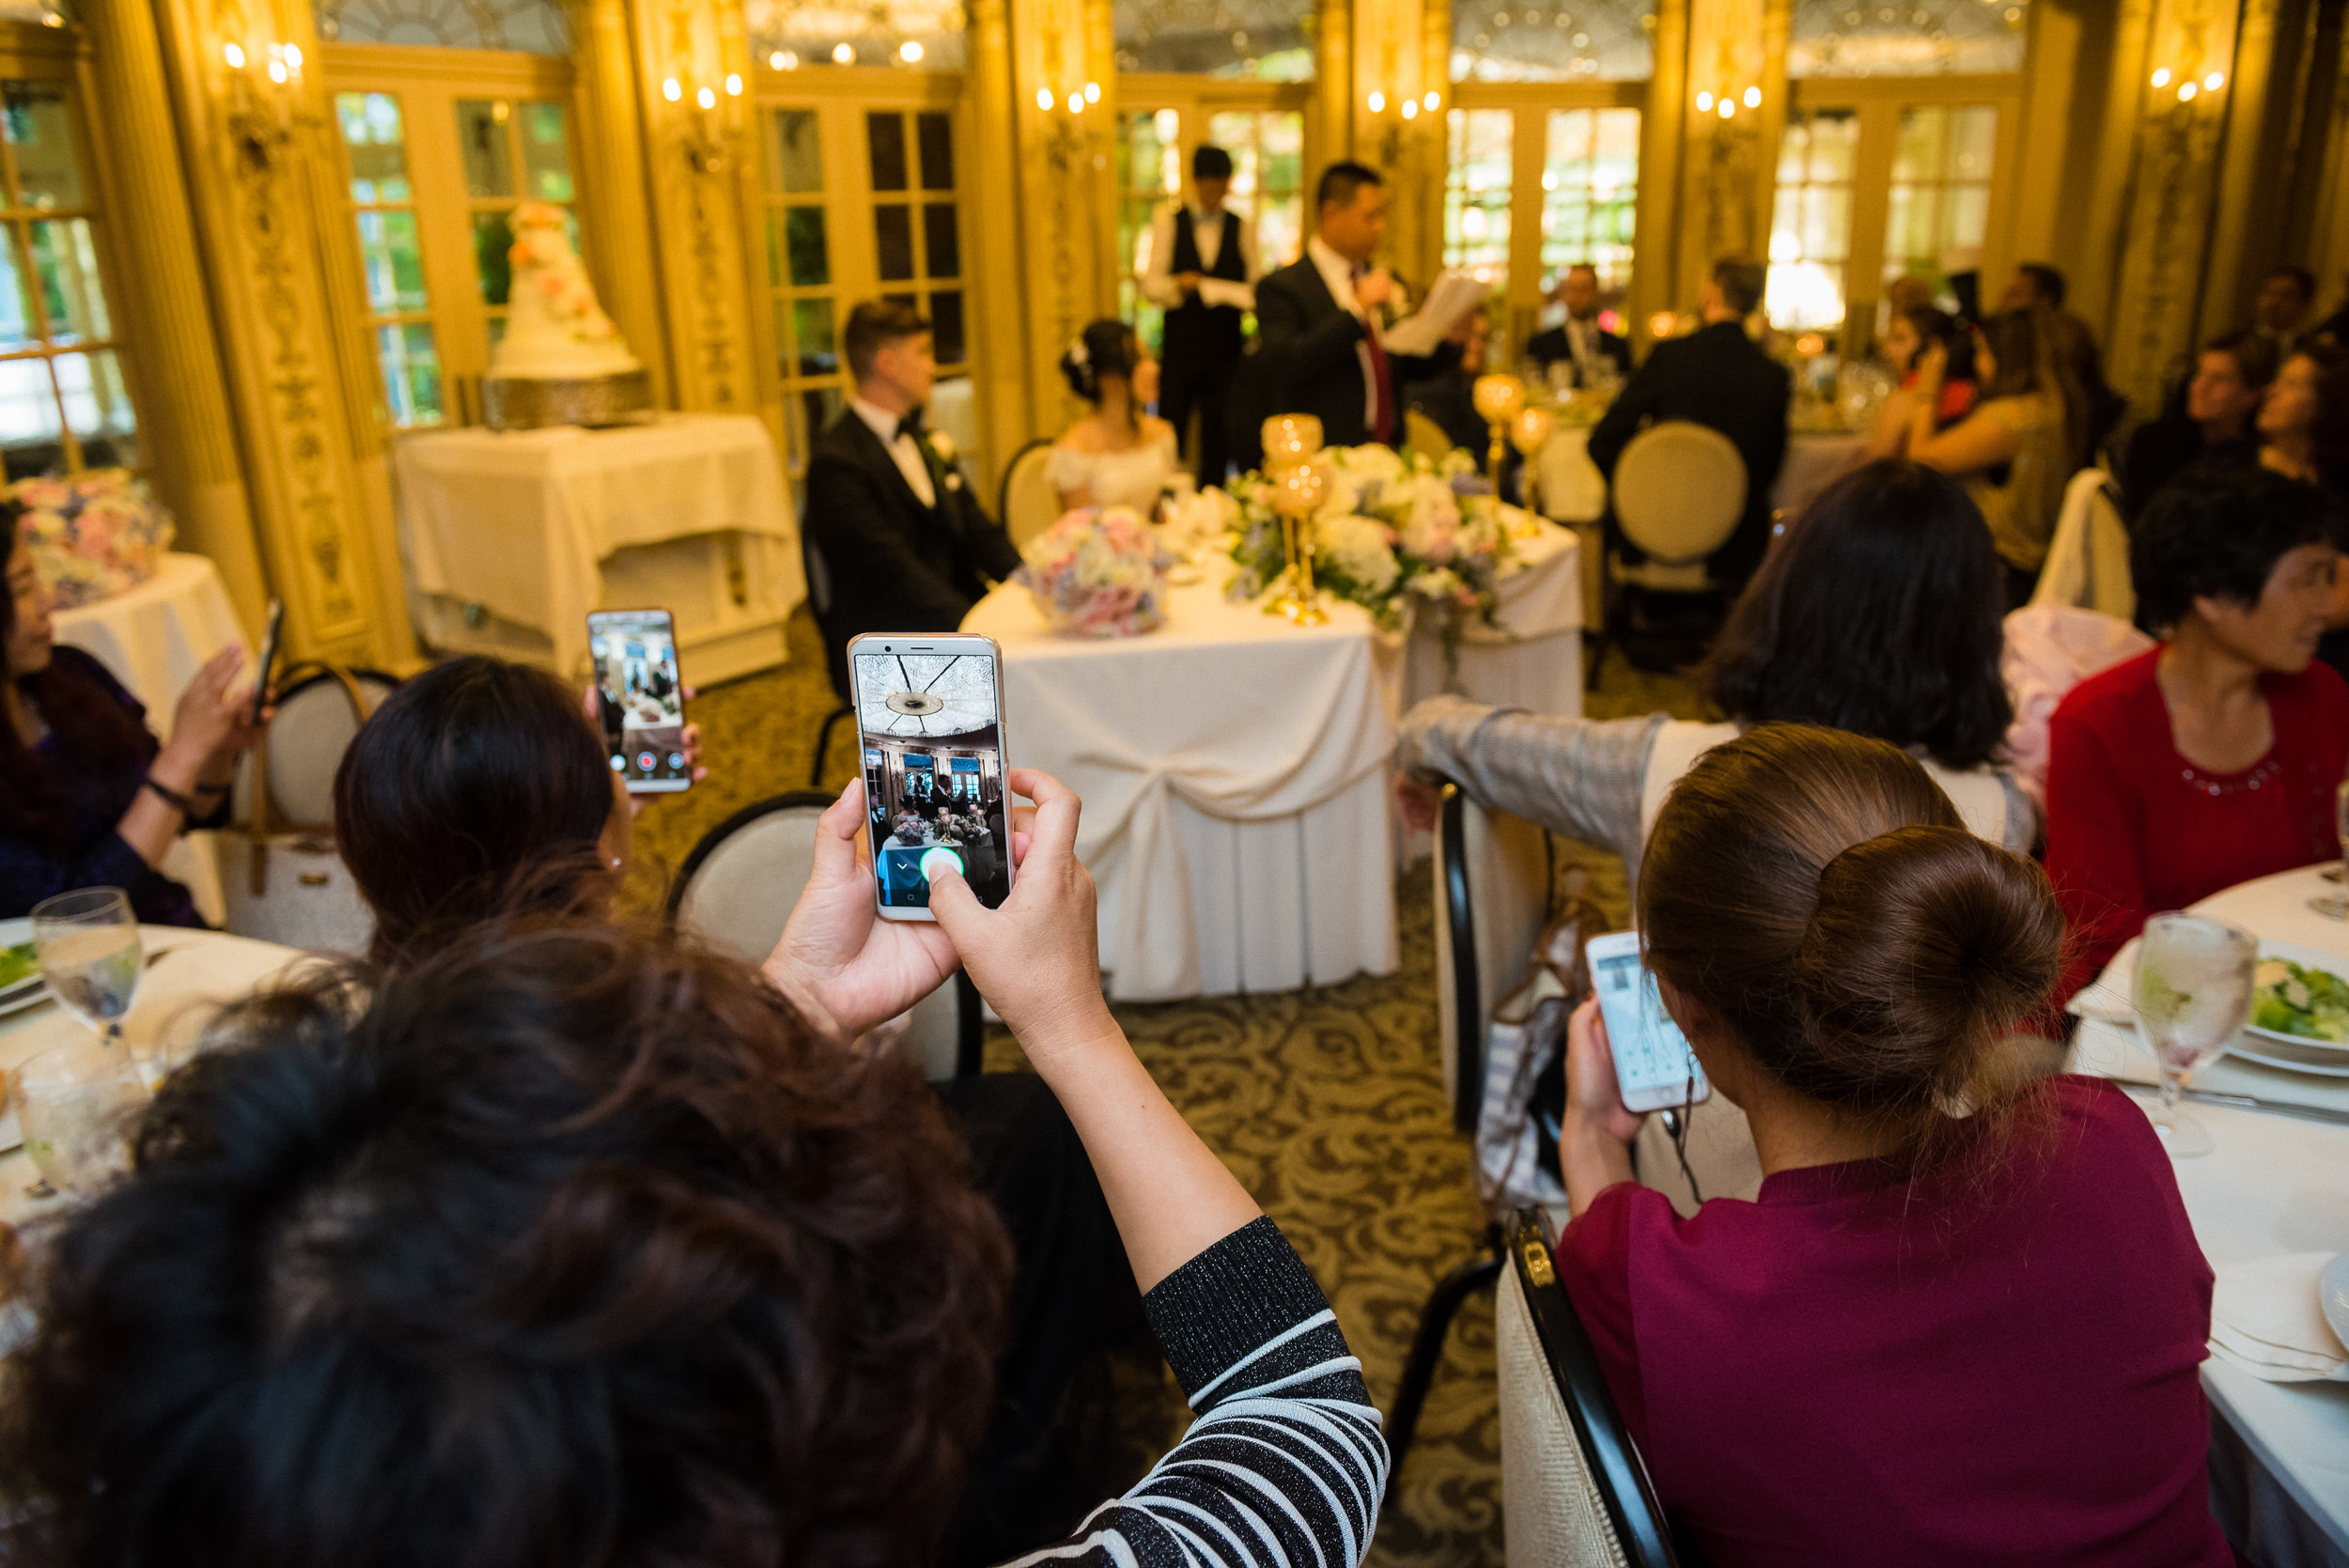 view from ping and brents wedding at the manor in west orange, new jersey. I specialize in wedidng documentary and photojournalism style photography, and it is very nice to take candid moments like these